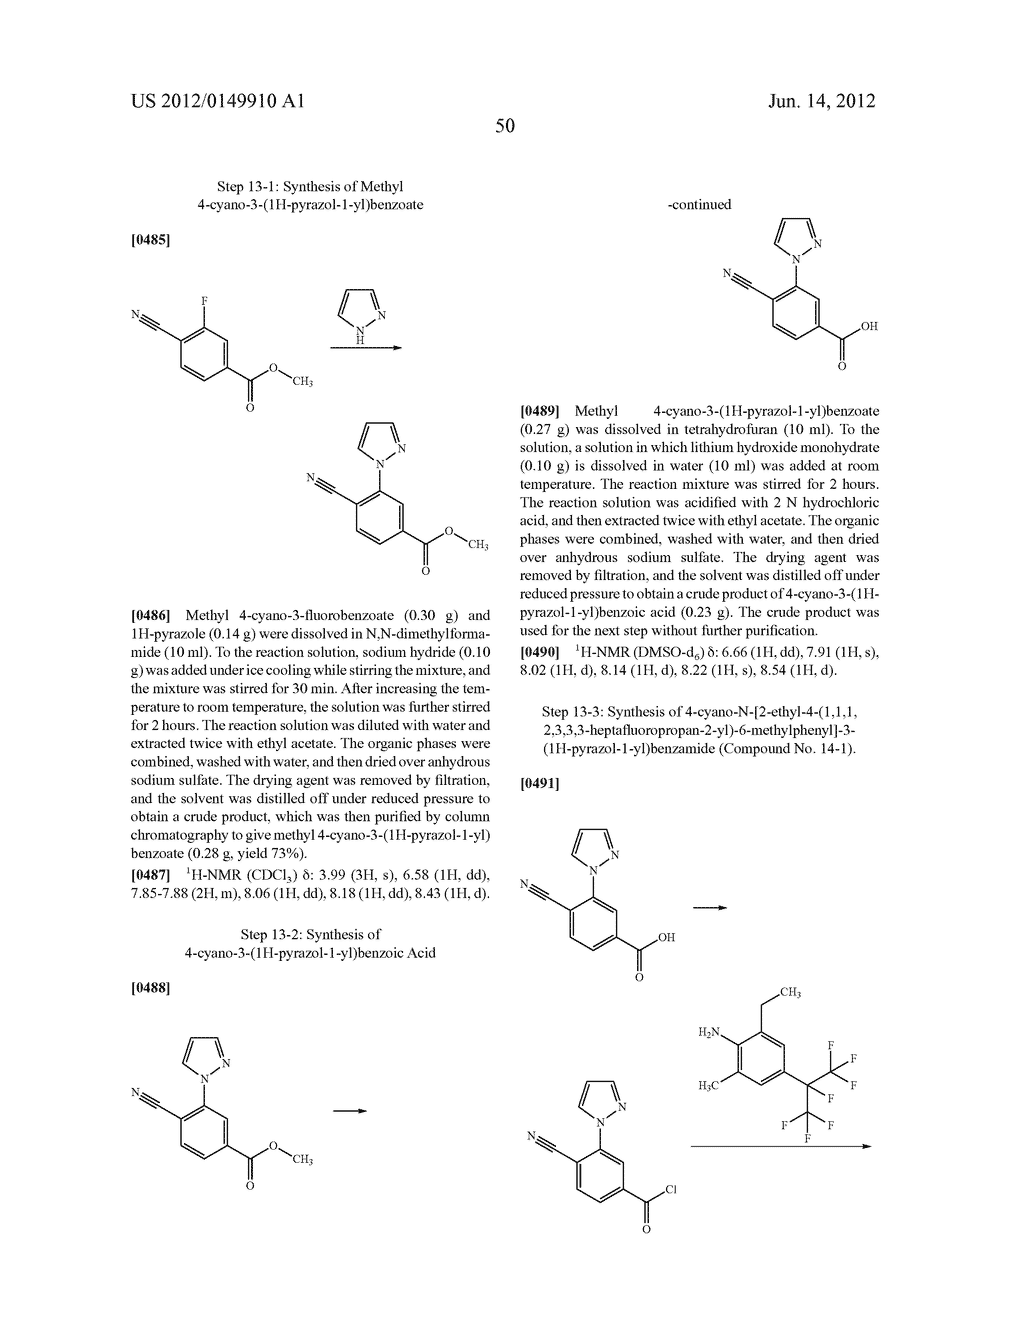 Pesticidal Carboxamides - diagram, schematic, and image 51